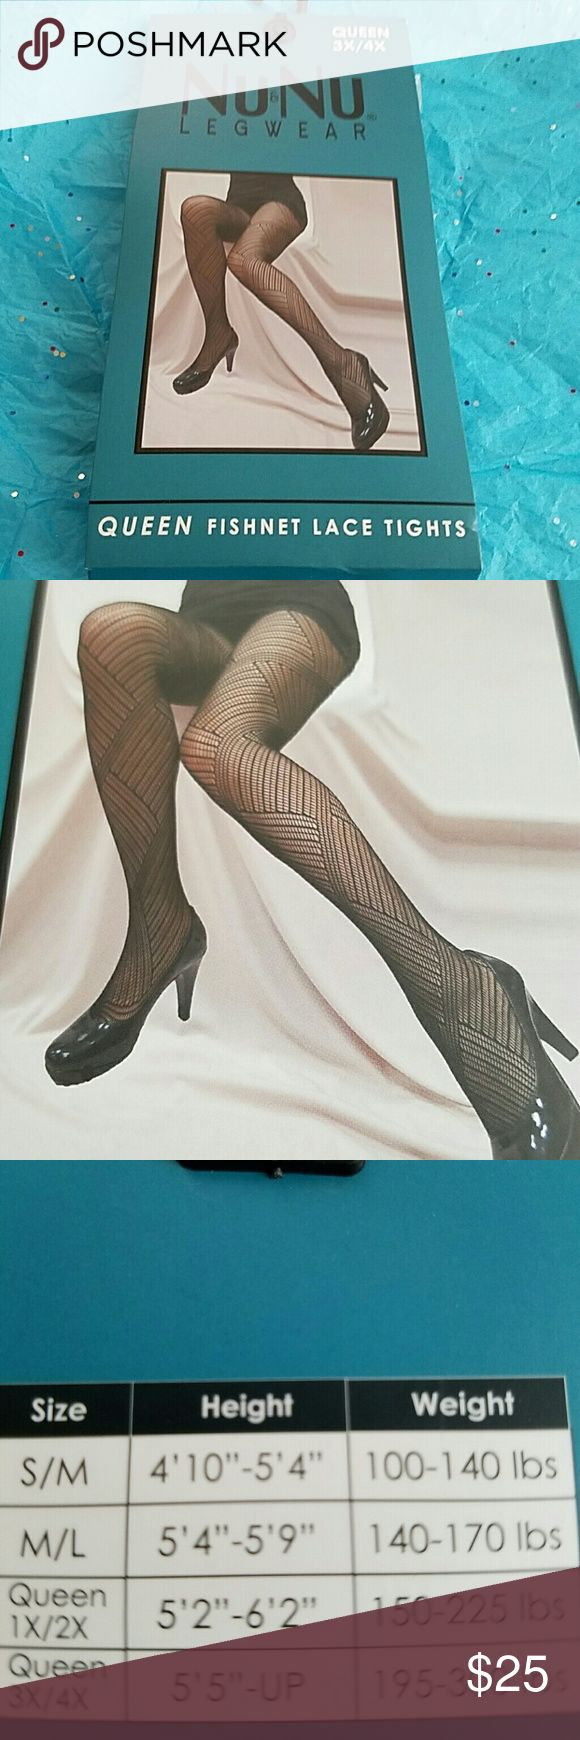 "3X/4X Queen size fishnet tights panty hose Chervon Offered is a sexy pair of black fishnet tights or panty hose with a large chevron pattern. New with tags and in immaculate condition.  Made by Nu&Nu. Queen size 3X/4X. 5'5"" -up, 195 - 300 lbs. 11 styles available so check out my other listings.  Style #11 Nu&Nu Accessories Hosiery & Socks"